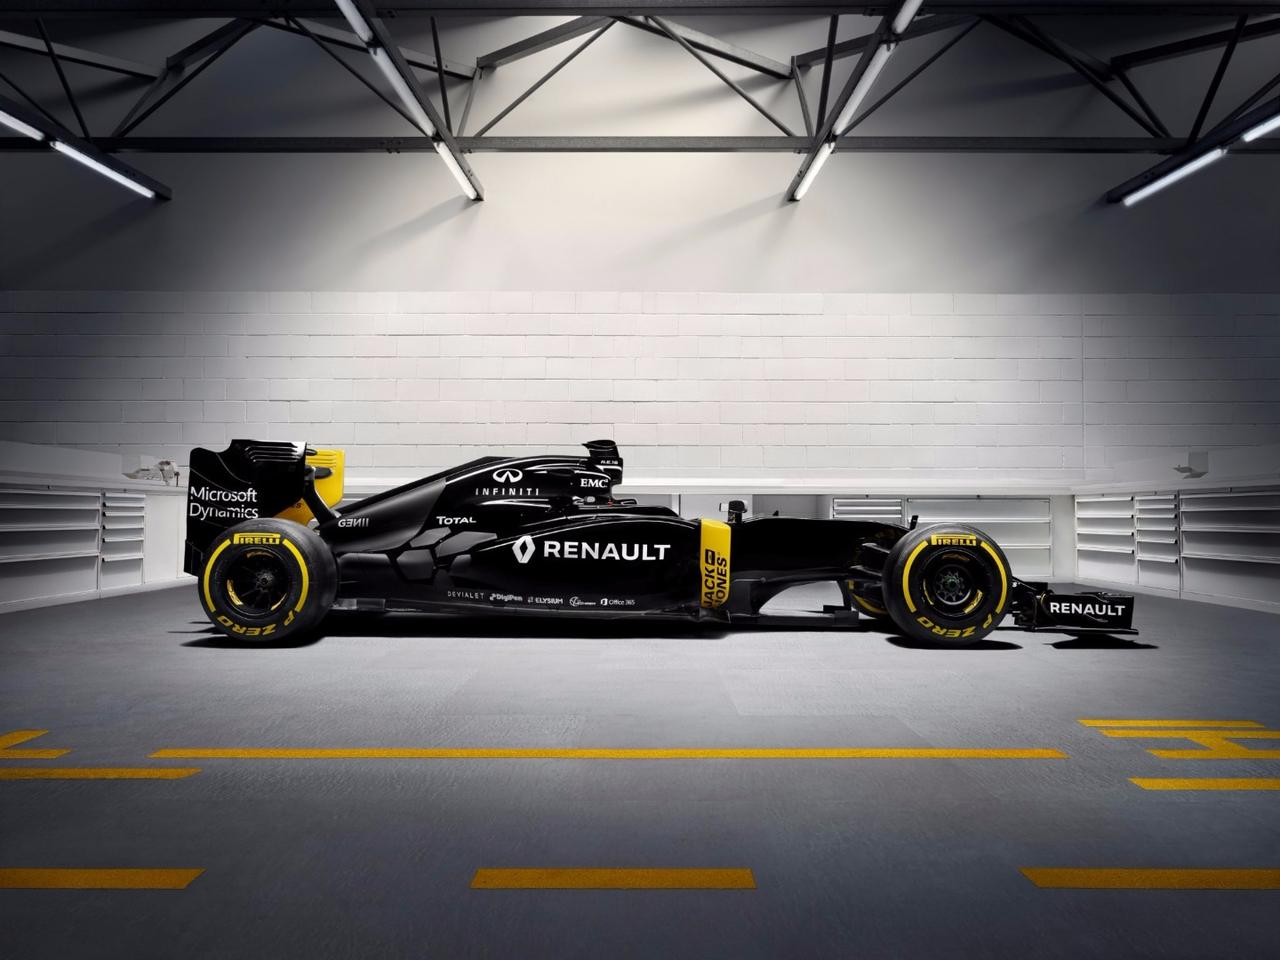 Power will be up around the 652 kW (874 hp) mark, although Renault is coy about the engine's output